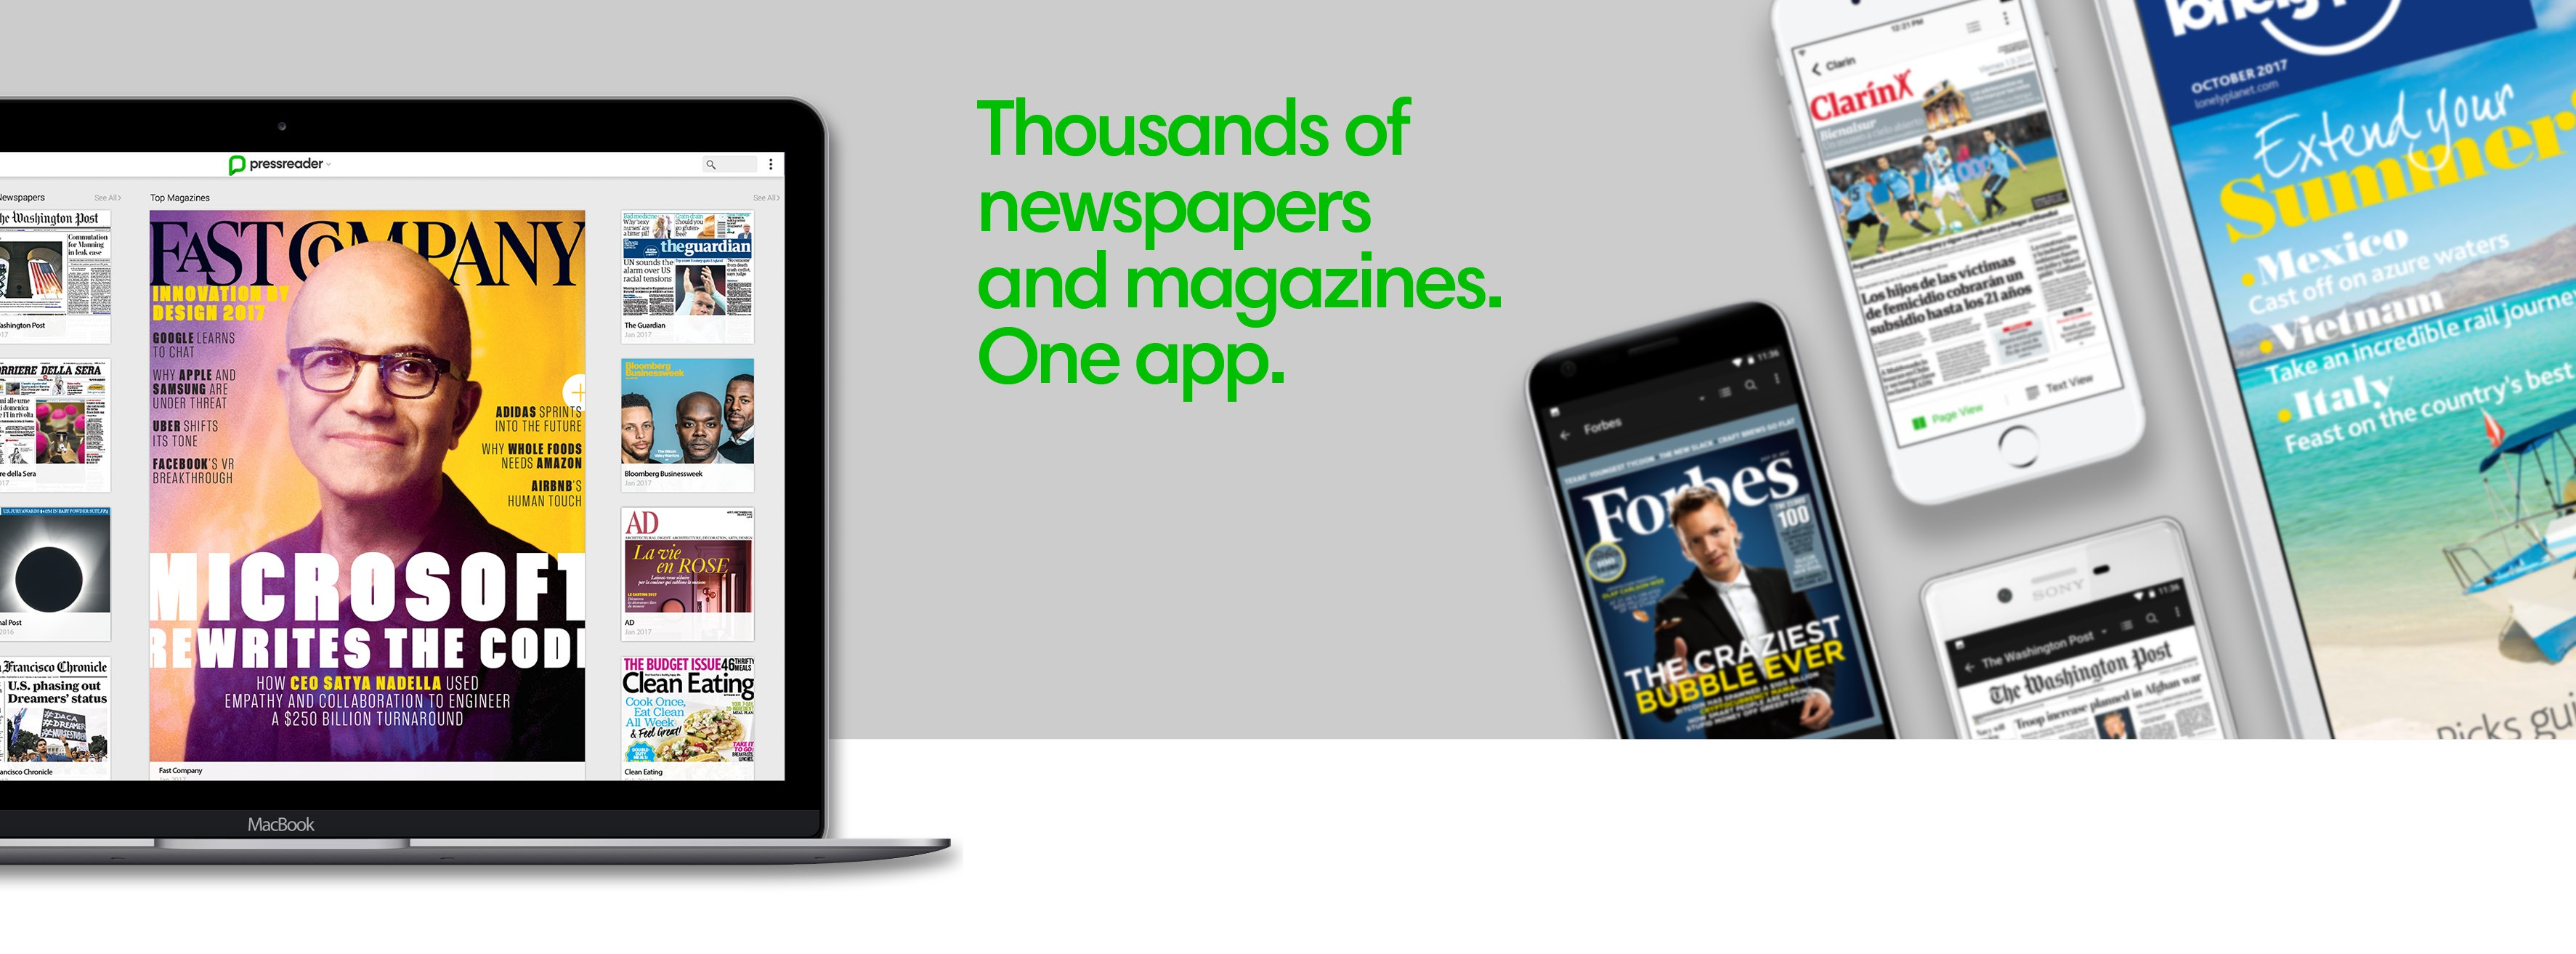 pressreader banner with images of mobile devices displaying news articles